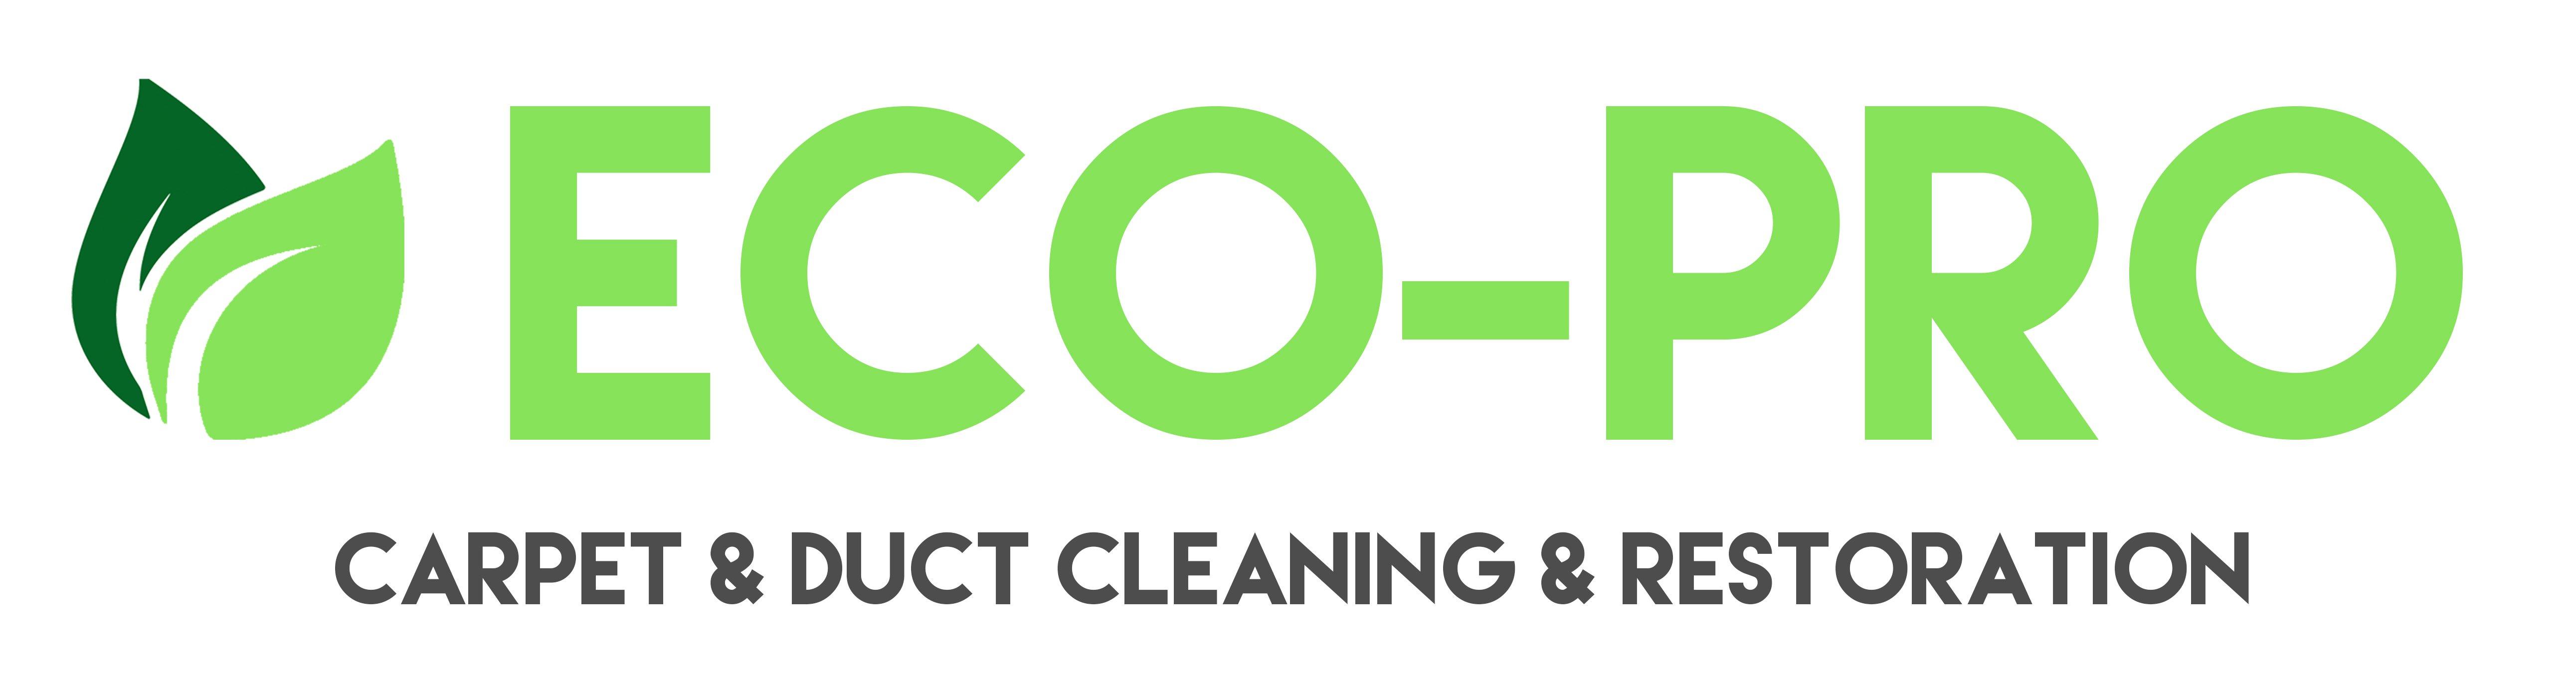 ECO PRO Carpet and duct cleaning and restoration